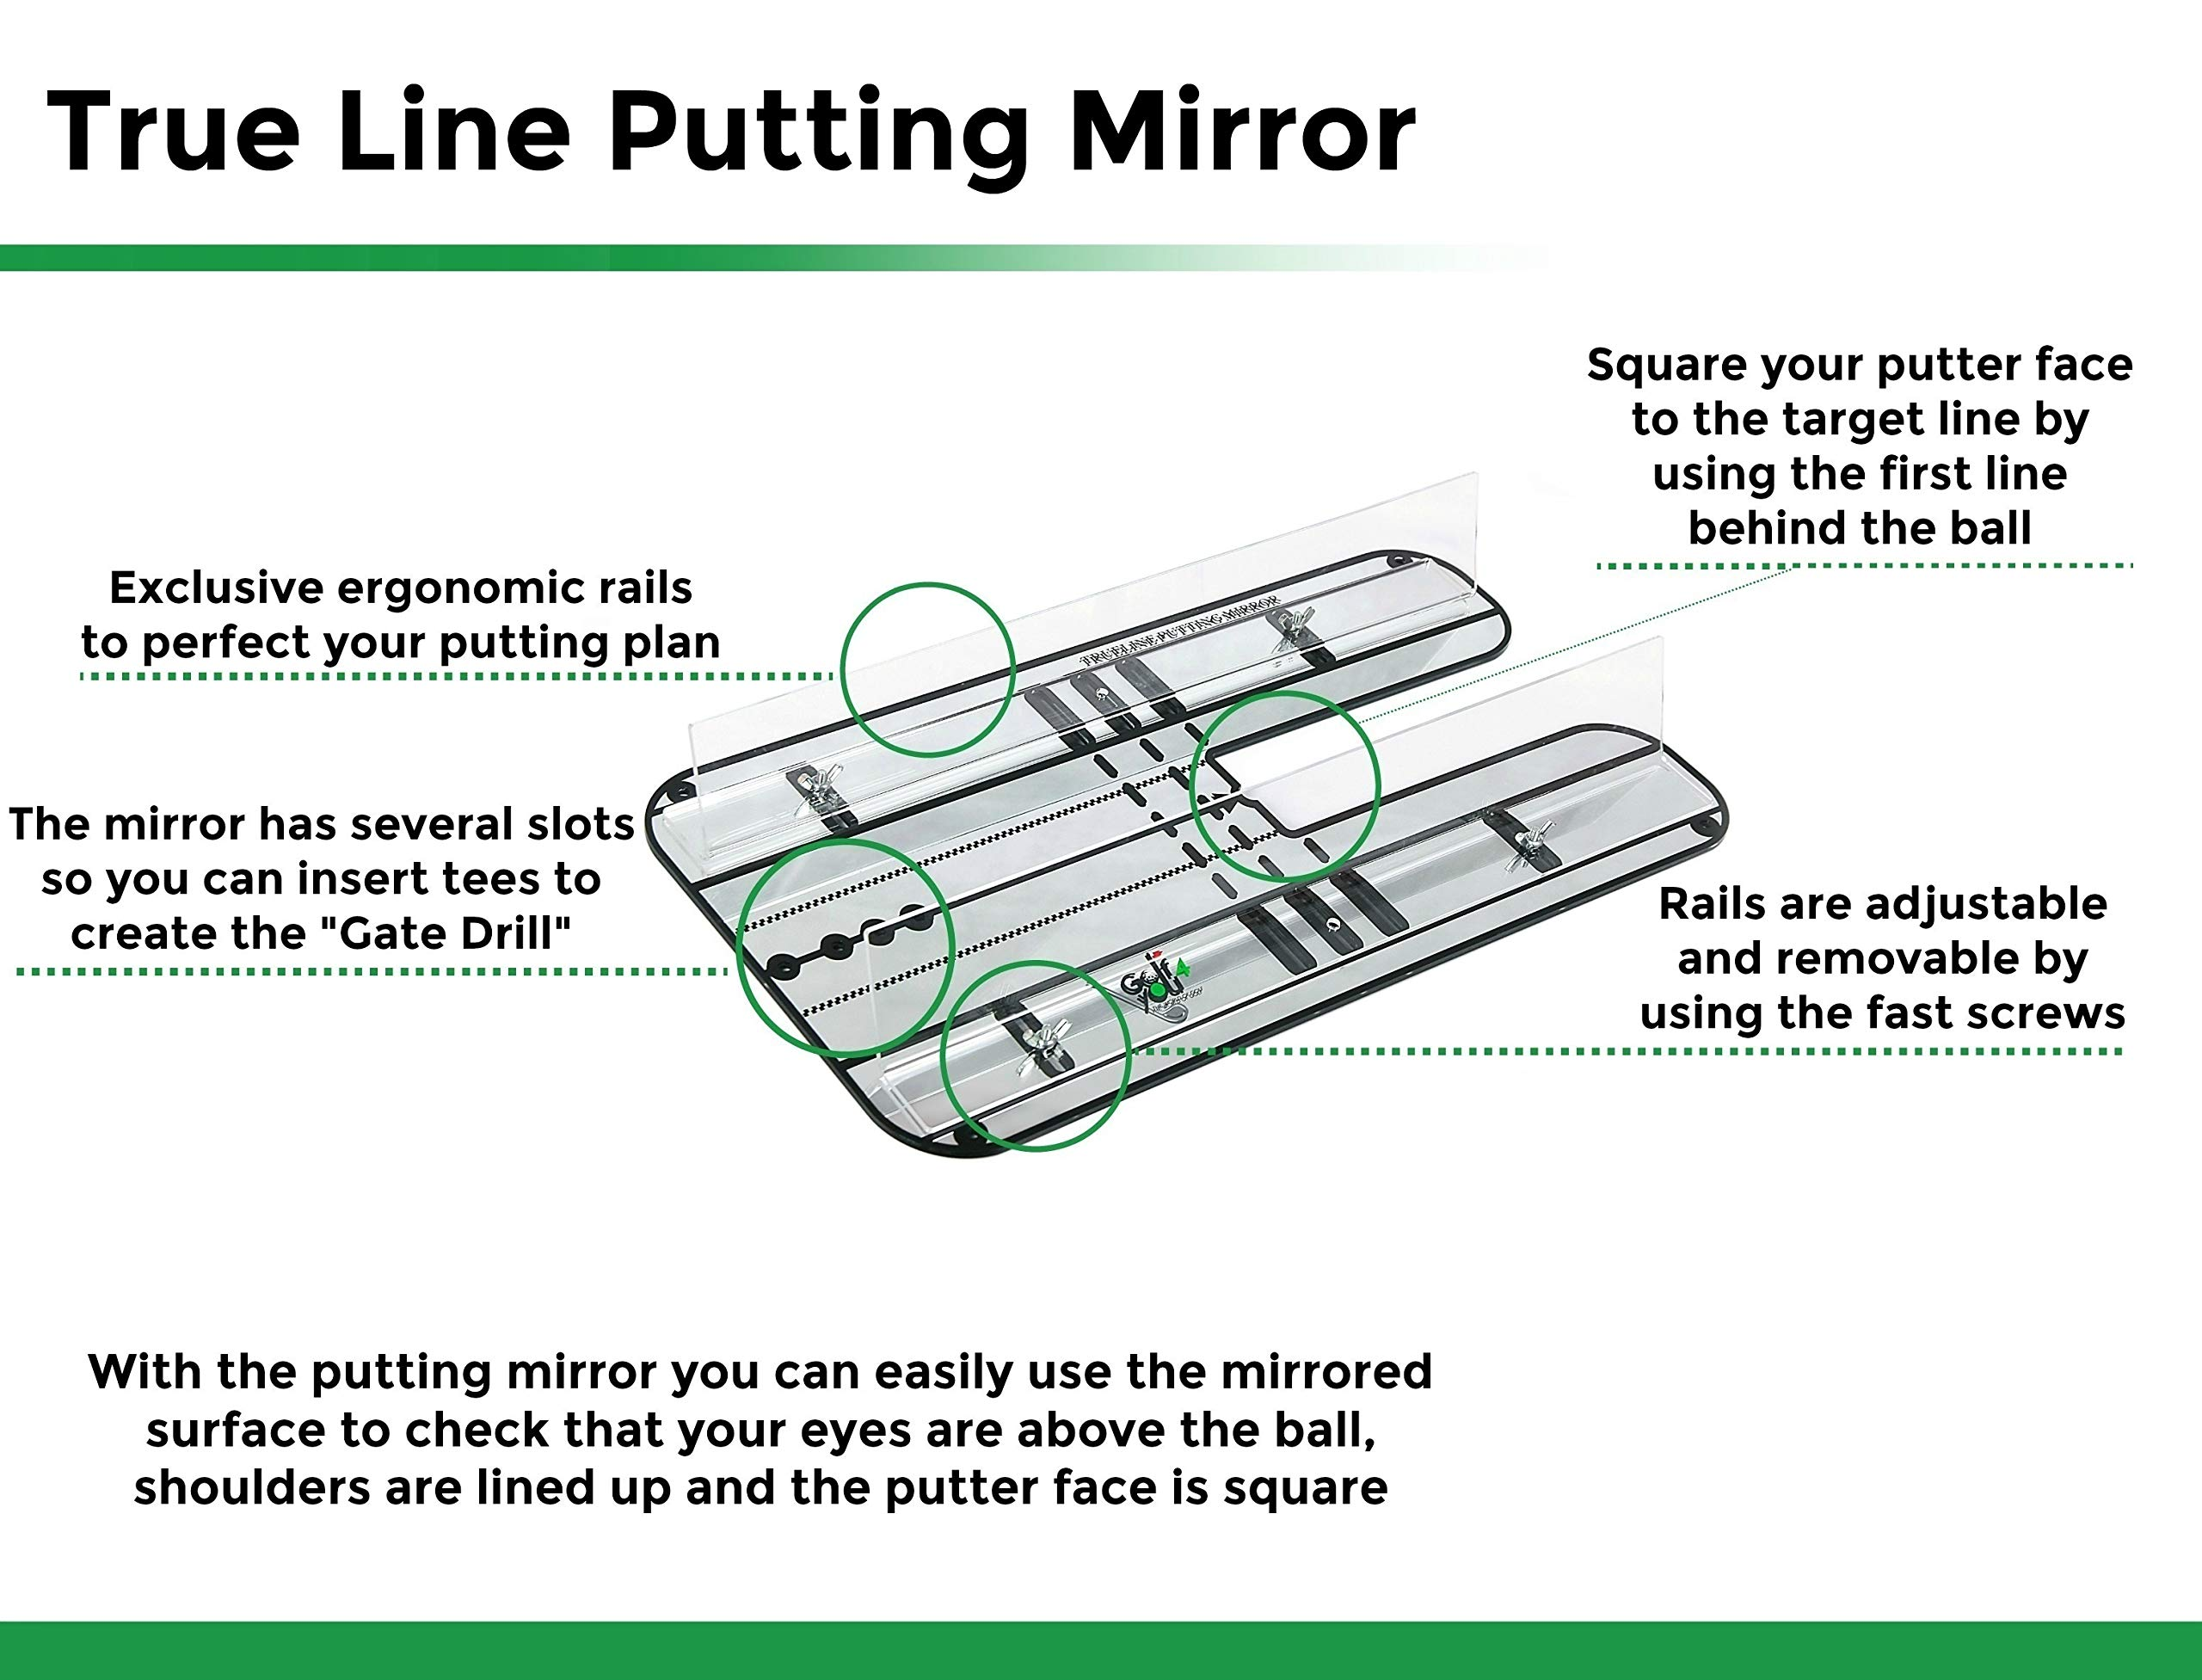 Golf Training Aid, Putting Set - XL Alignment Mirror Design with Our Exclusive Clear Adjustable Guide Rails ''True Line Putting Mirror'' - Leading Practice Aid for On-Line, Consistent Putting Stroke by GOLF4 YOU THE WORLD OF GOLF (Image #4)